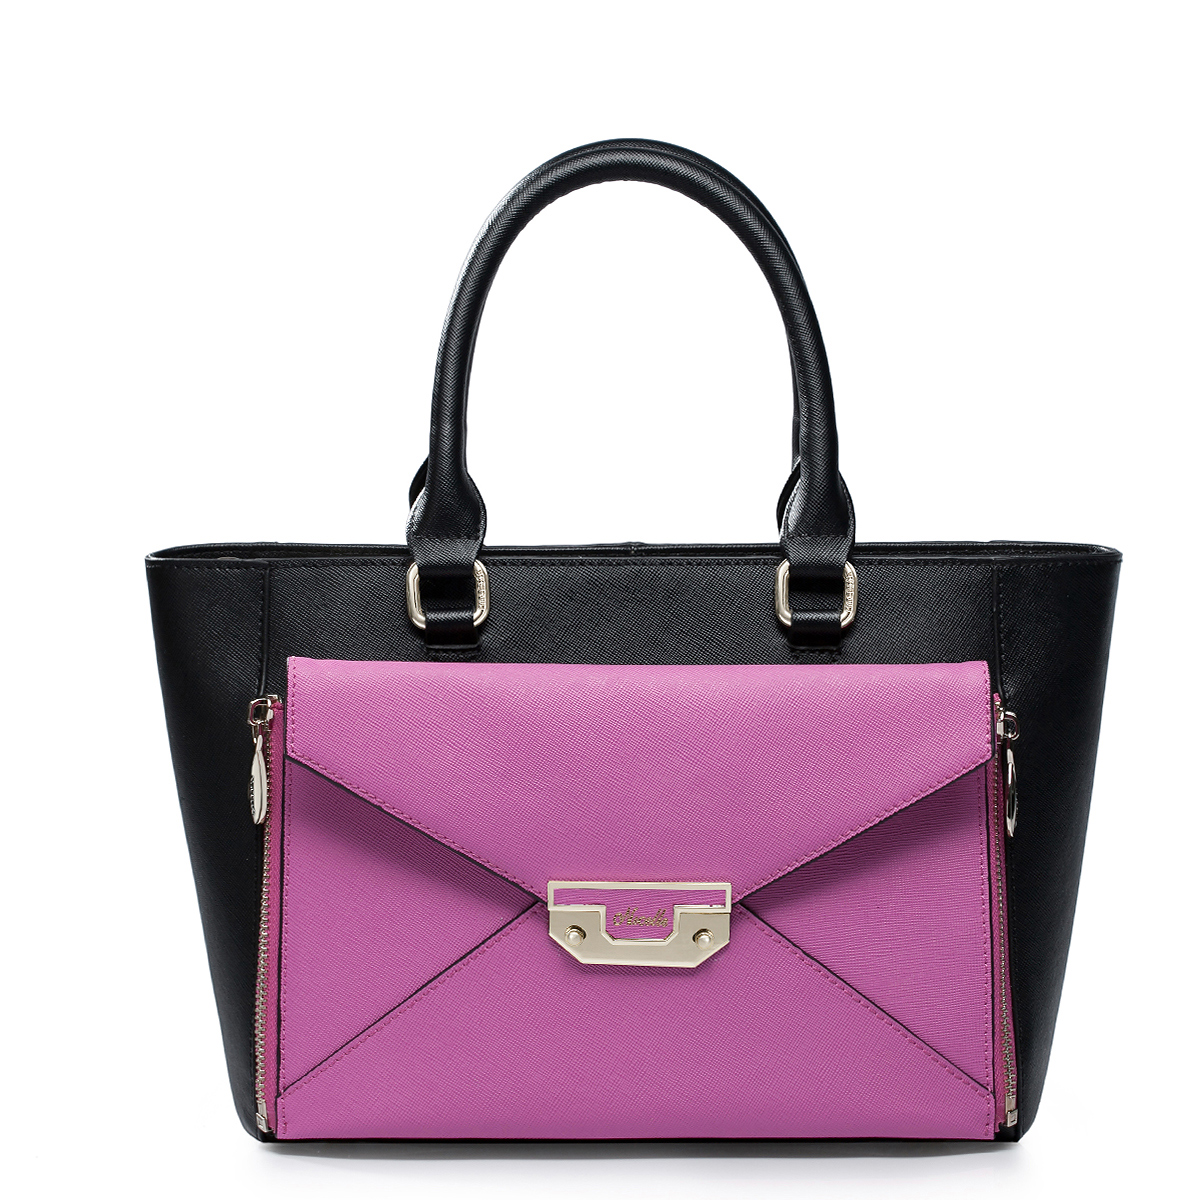 2014 new designer handbag black for Designer accessoires